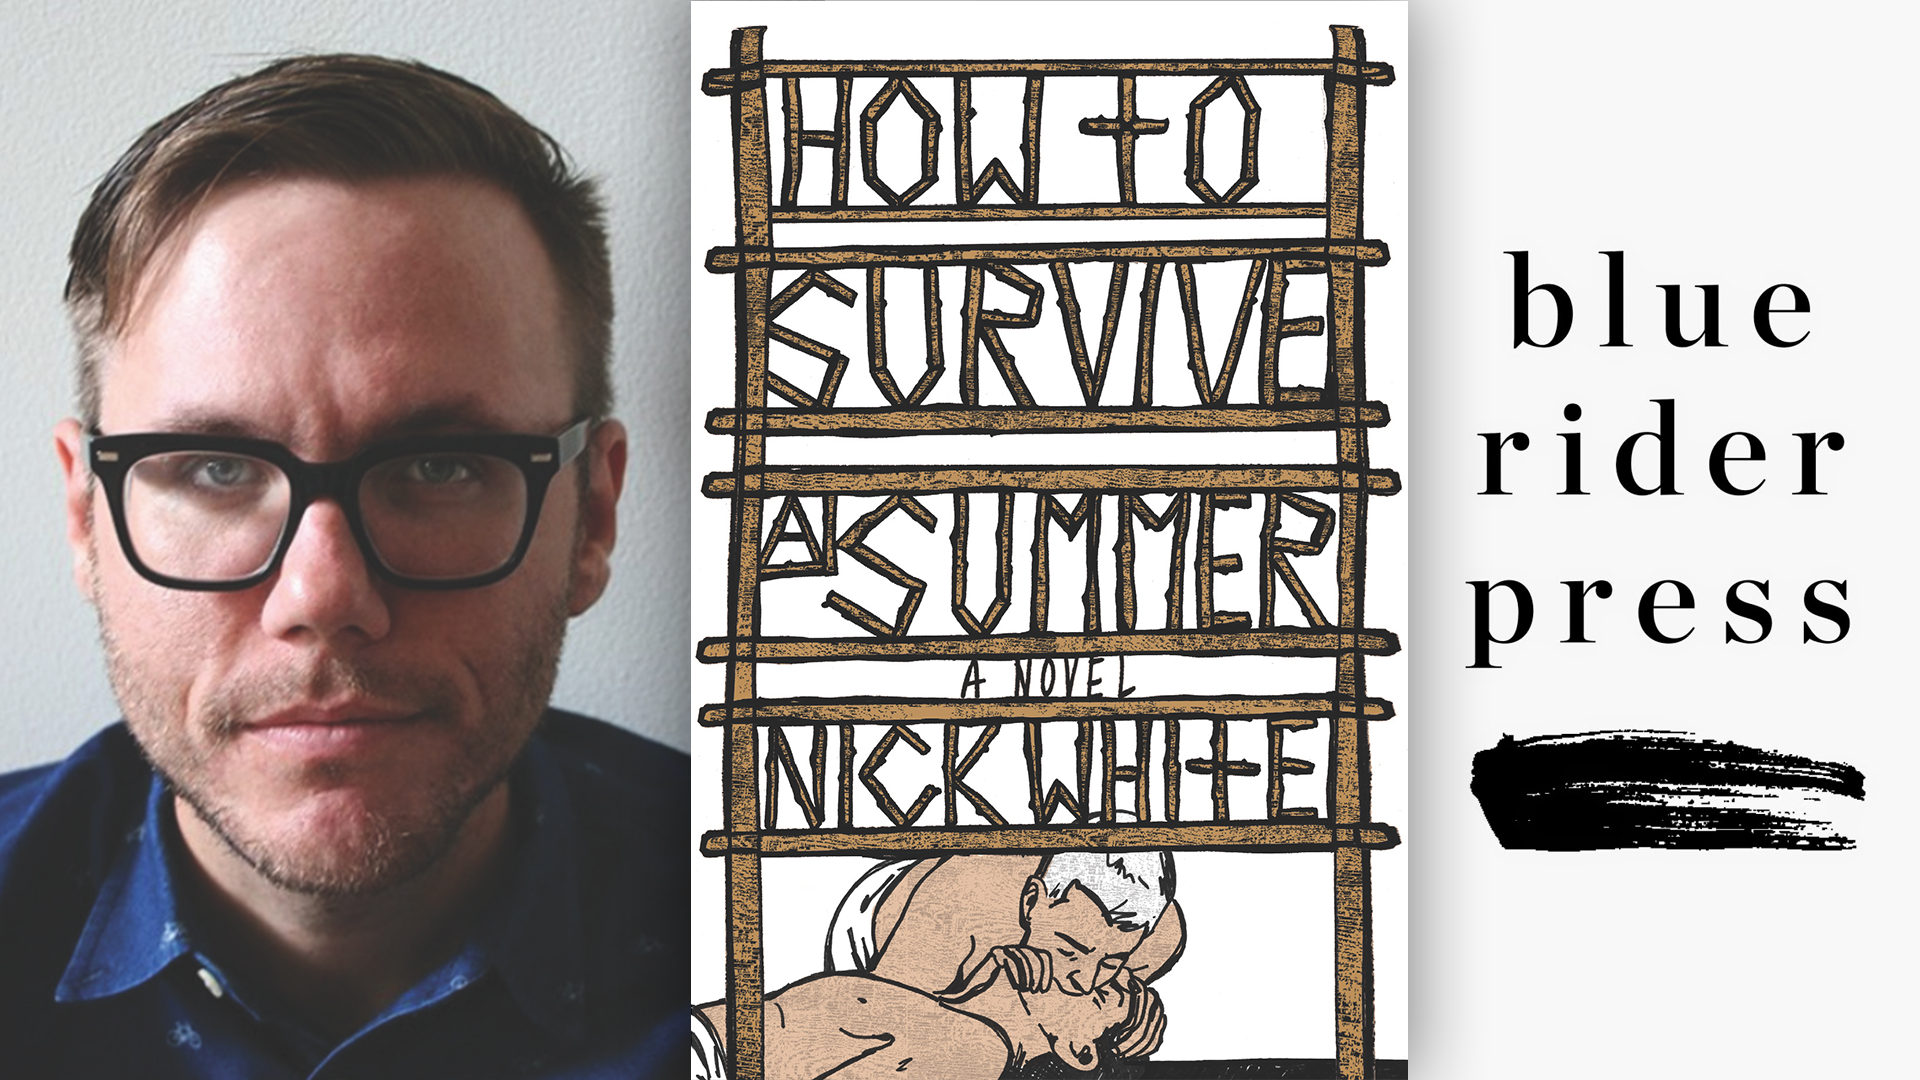 Nick White, the cover of HOW TO SURVIVE A SUMMER and the blue rider press logo